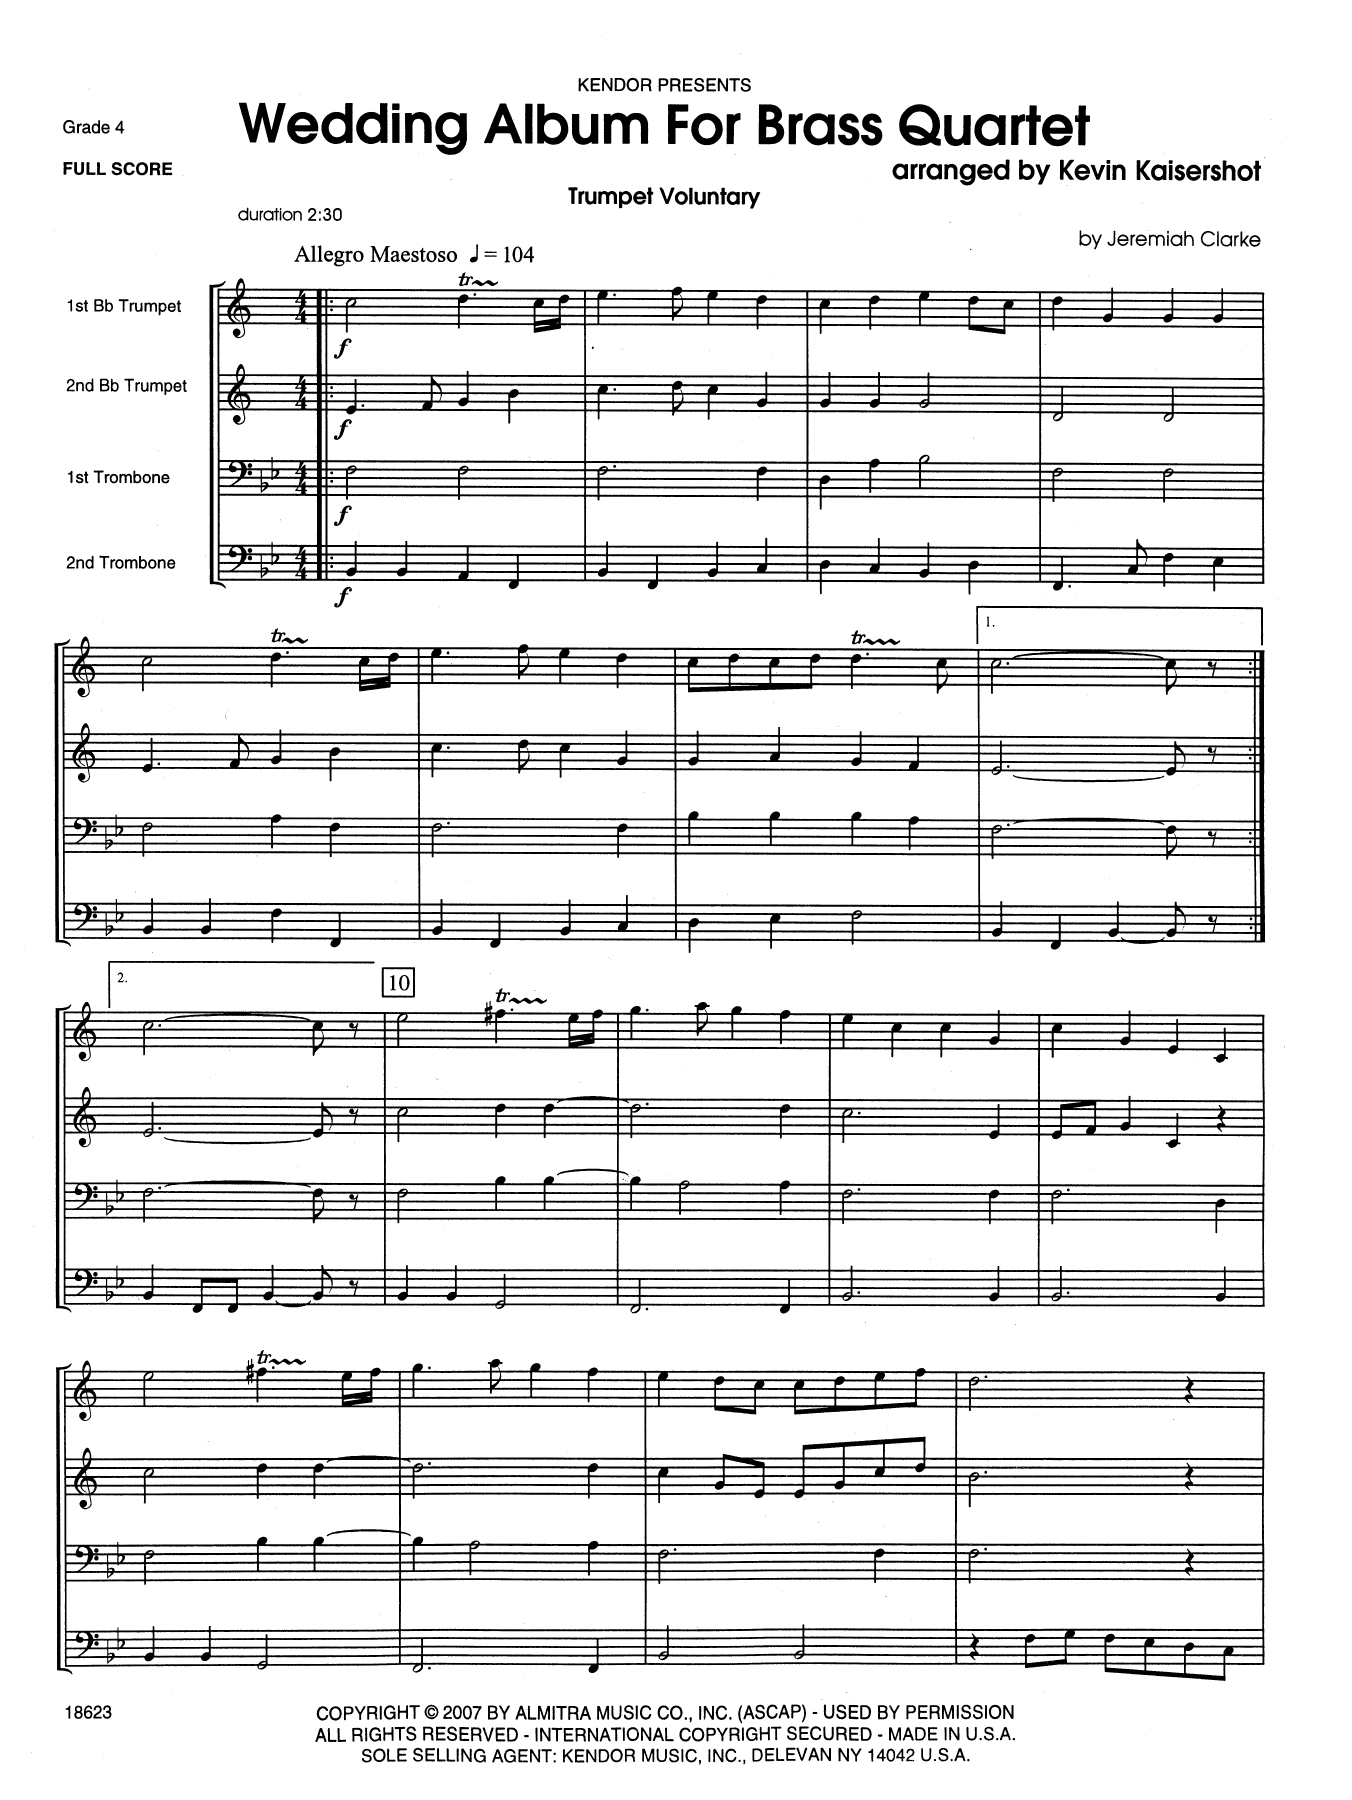 Wedding Album For Brass Quartet (COMPLETE) sheet music for brass quintet by Kevin Kaisershot. Score Image Preview.